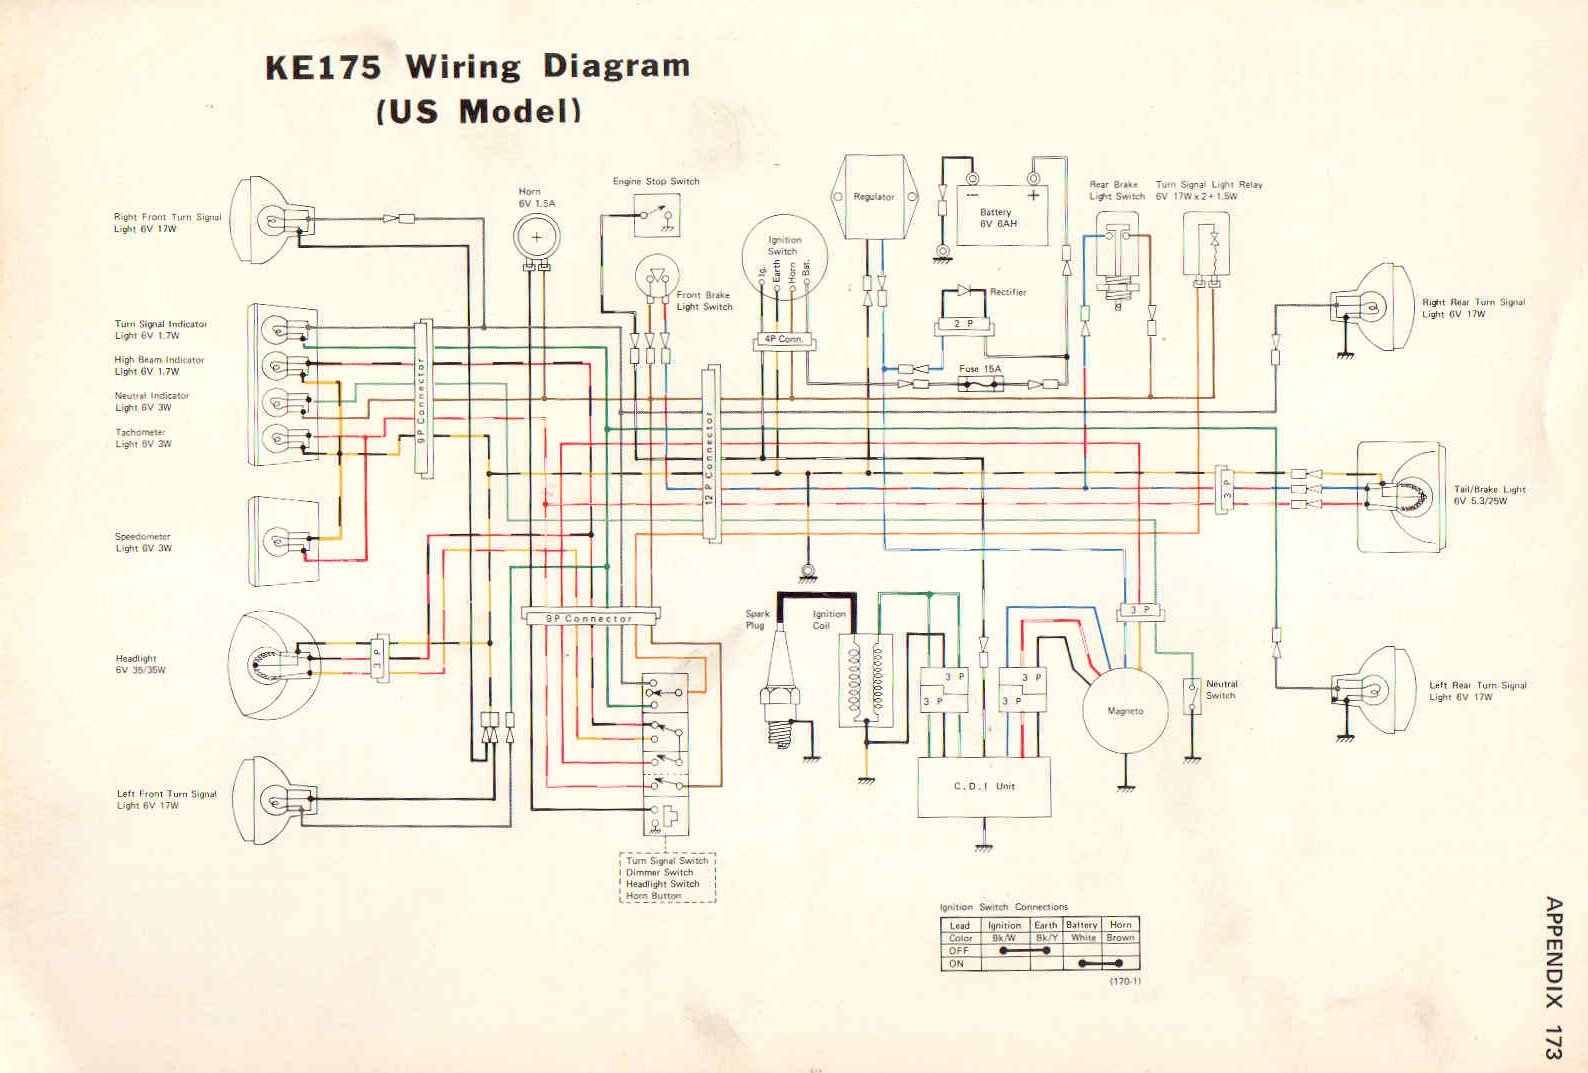 Kawasaki 100 Wiring Diagram Manual Guide. 1975 Kawasaki 100 Wiring Diagram Library Rh 27 Muehlwald De 2001 Ke100. Kawasaki. 2006 Kawasaki Klr 650 Wiring Diagram At Scoala.co